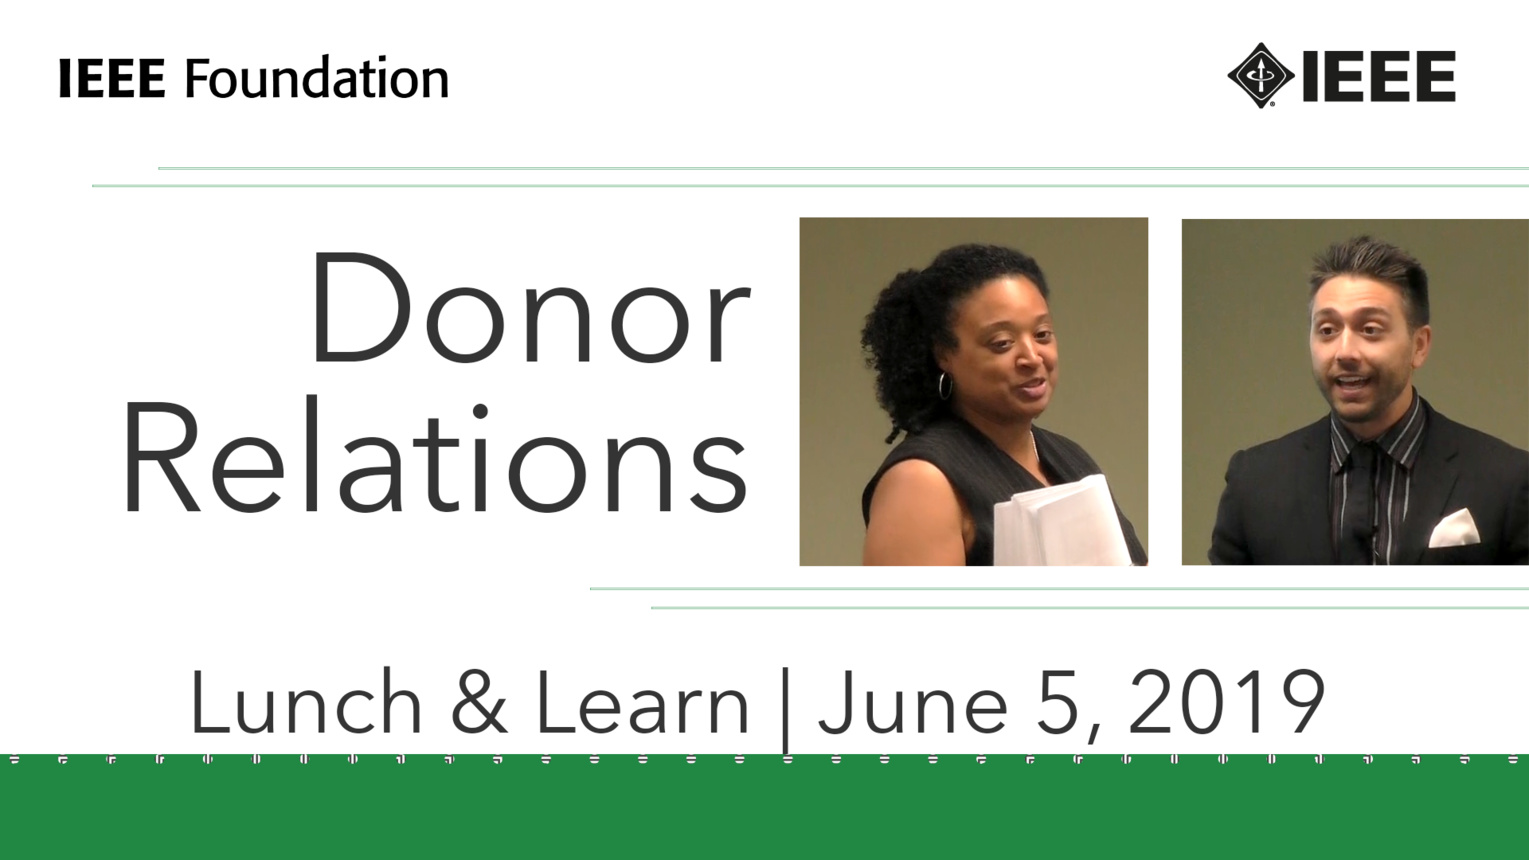 Donor Relations - IEEE Foundation Development Education Strategies Series, Part 2 of 4